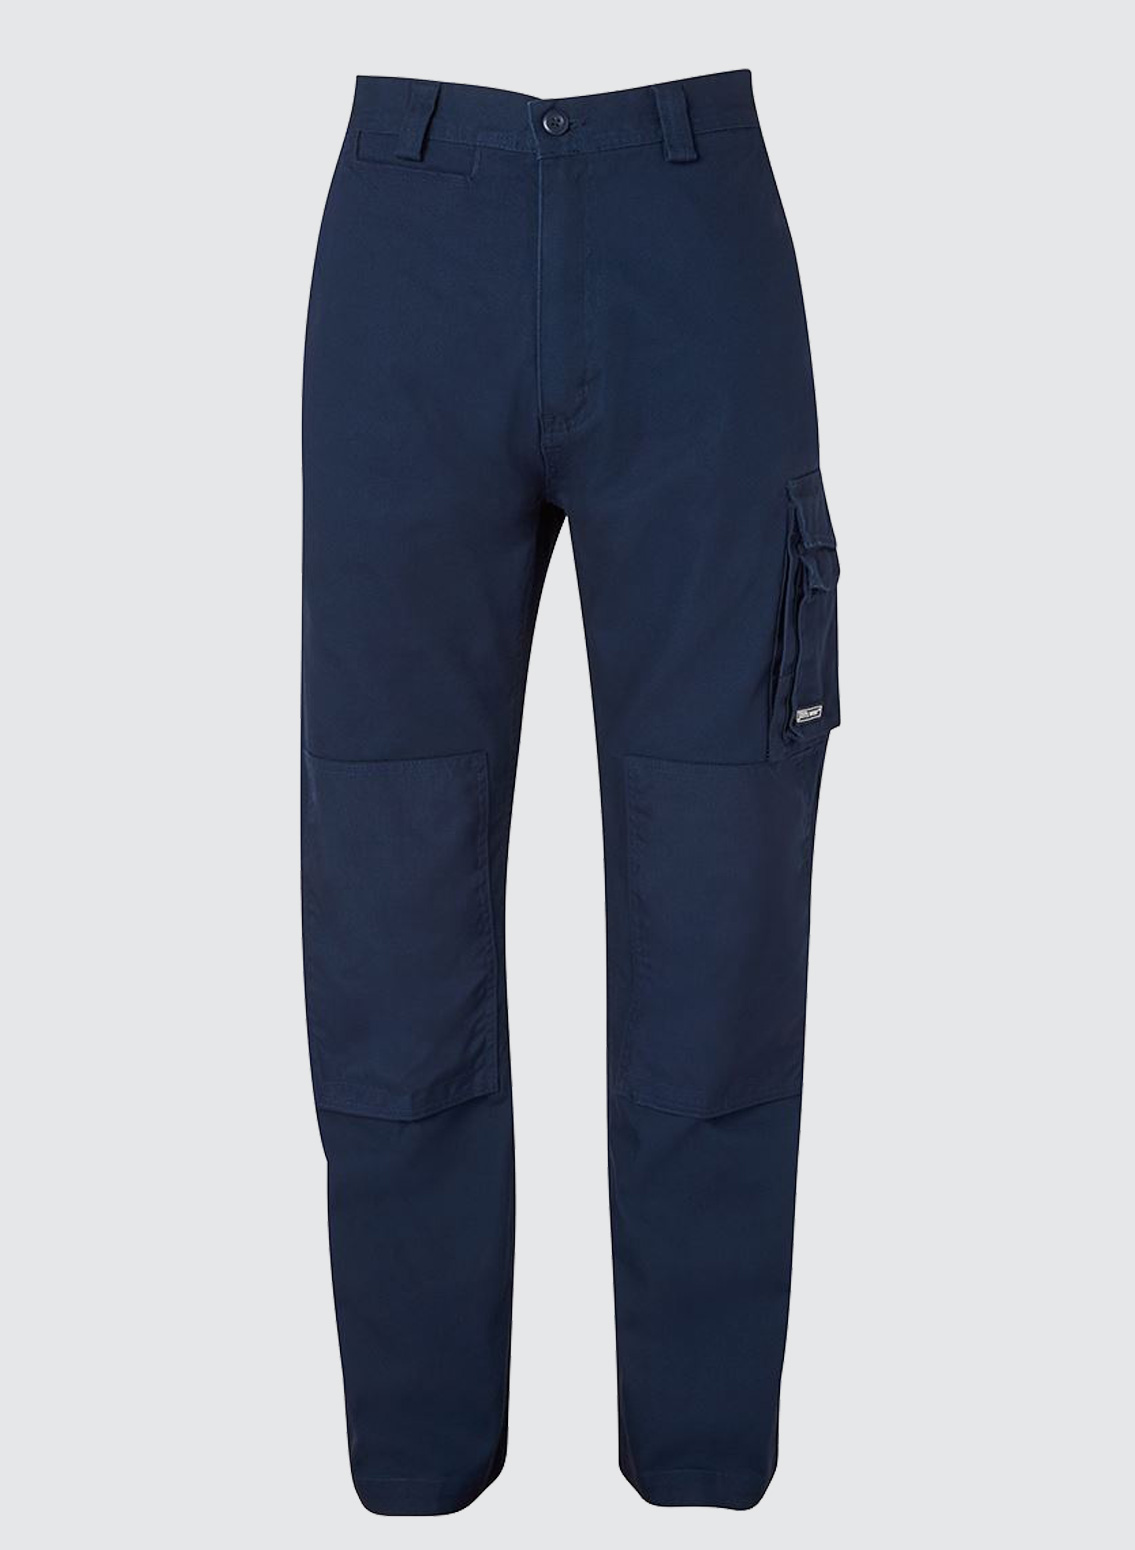 The Patagonia Men's Iron Forge Hemp® Canvas Cargo Pants - Regular are heavy-duty work pants with cargo pockets built to stand up to day-in, day-out work.